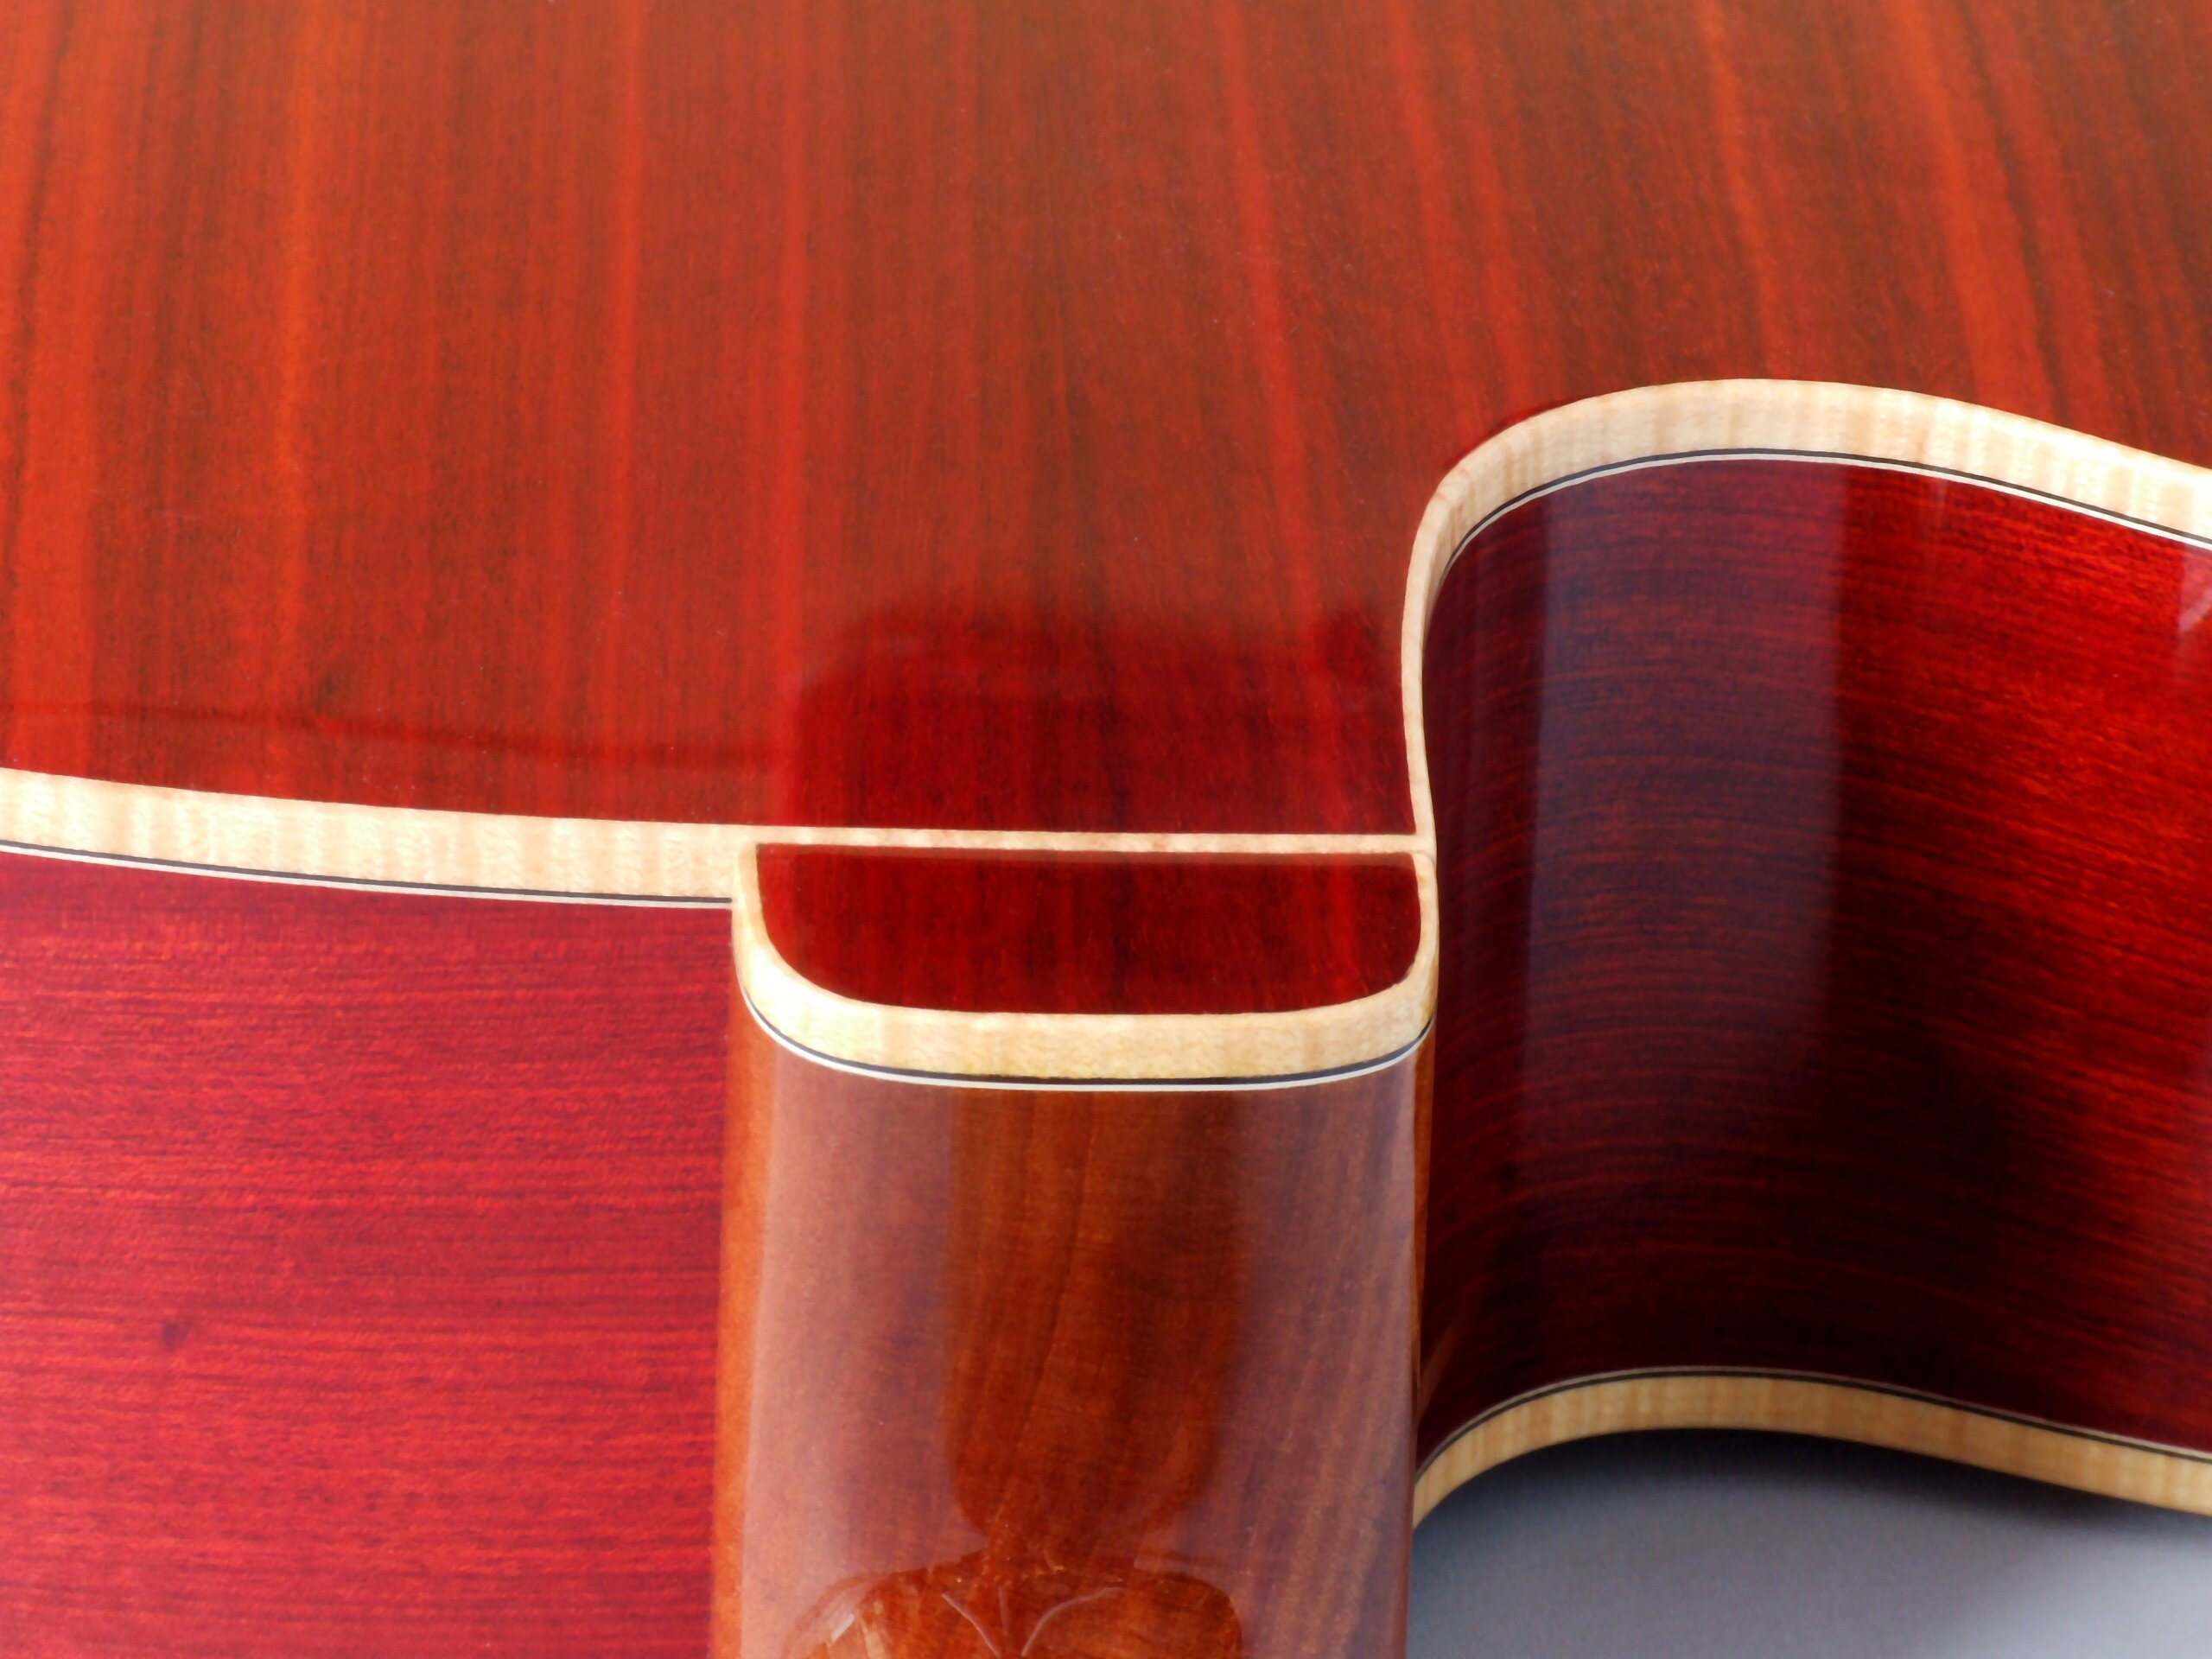 Detail of the heel cap on a bloodwood guitar with maple binding